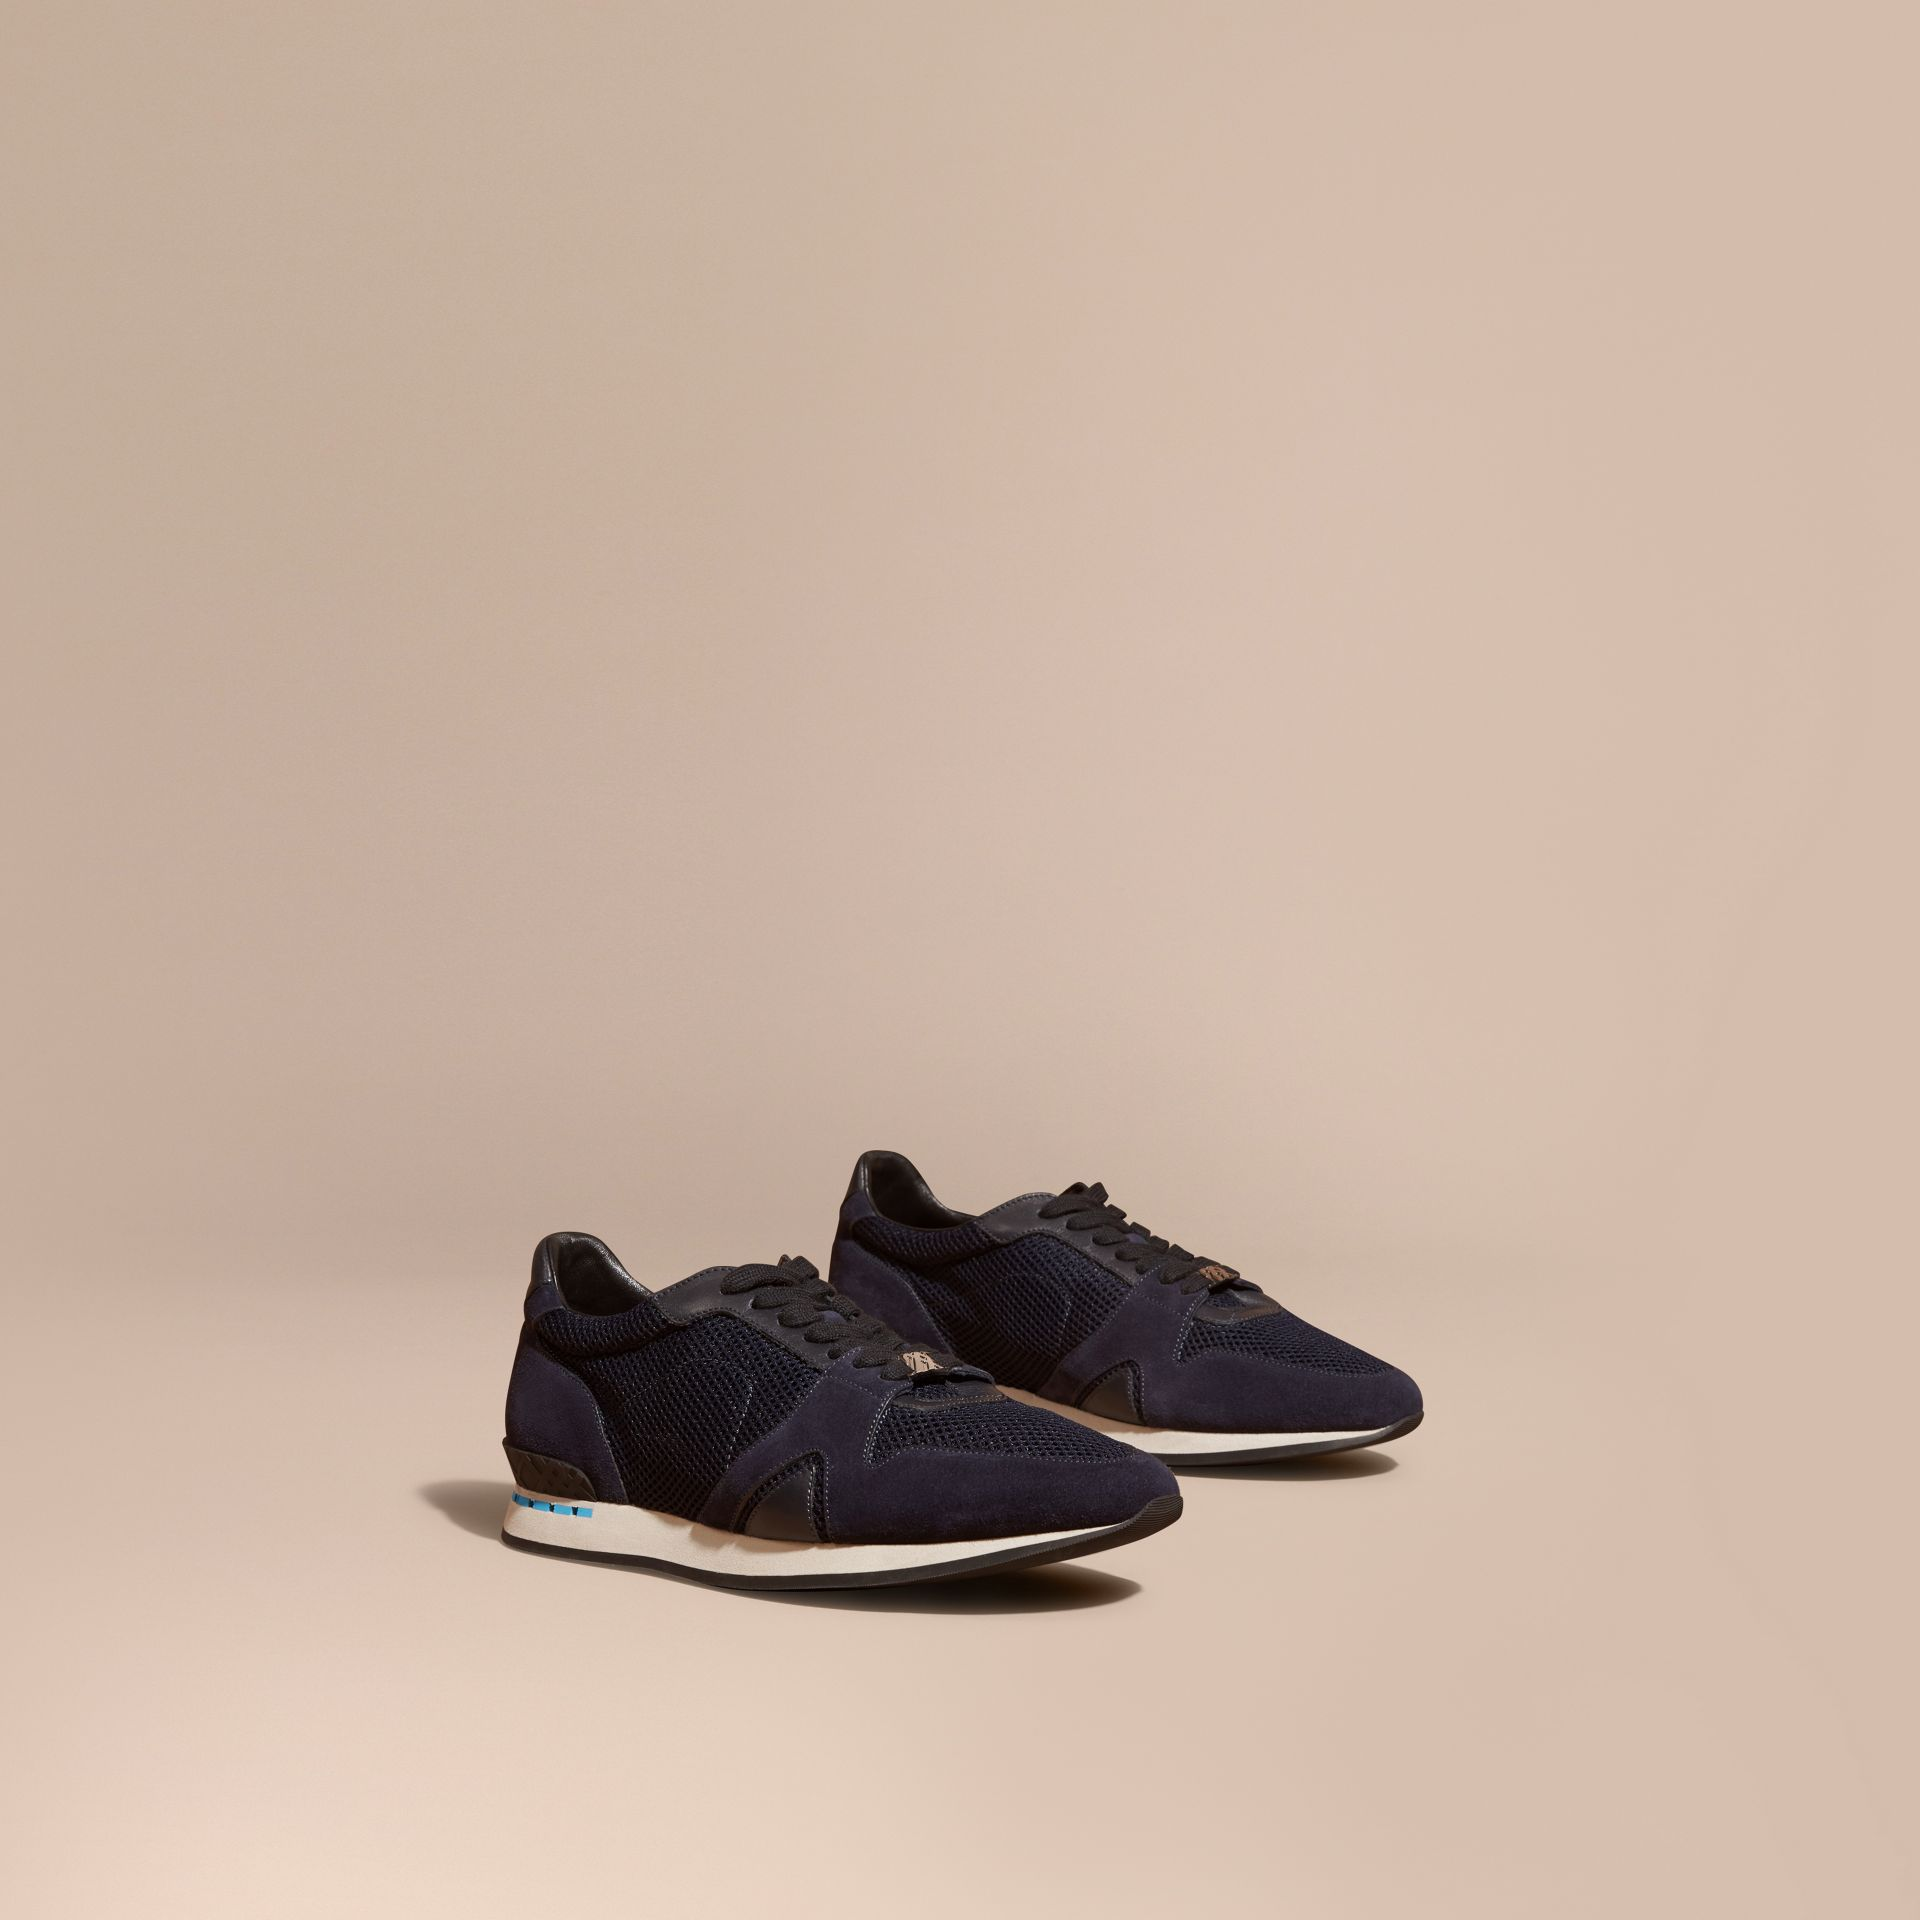 Navy The Field Sneaker in Suede and Mesh Navy - gallery image 1